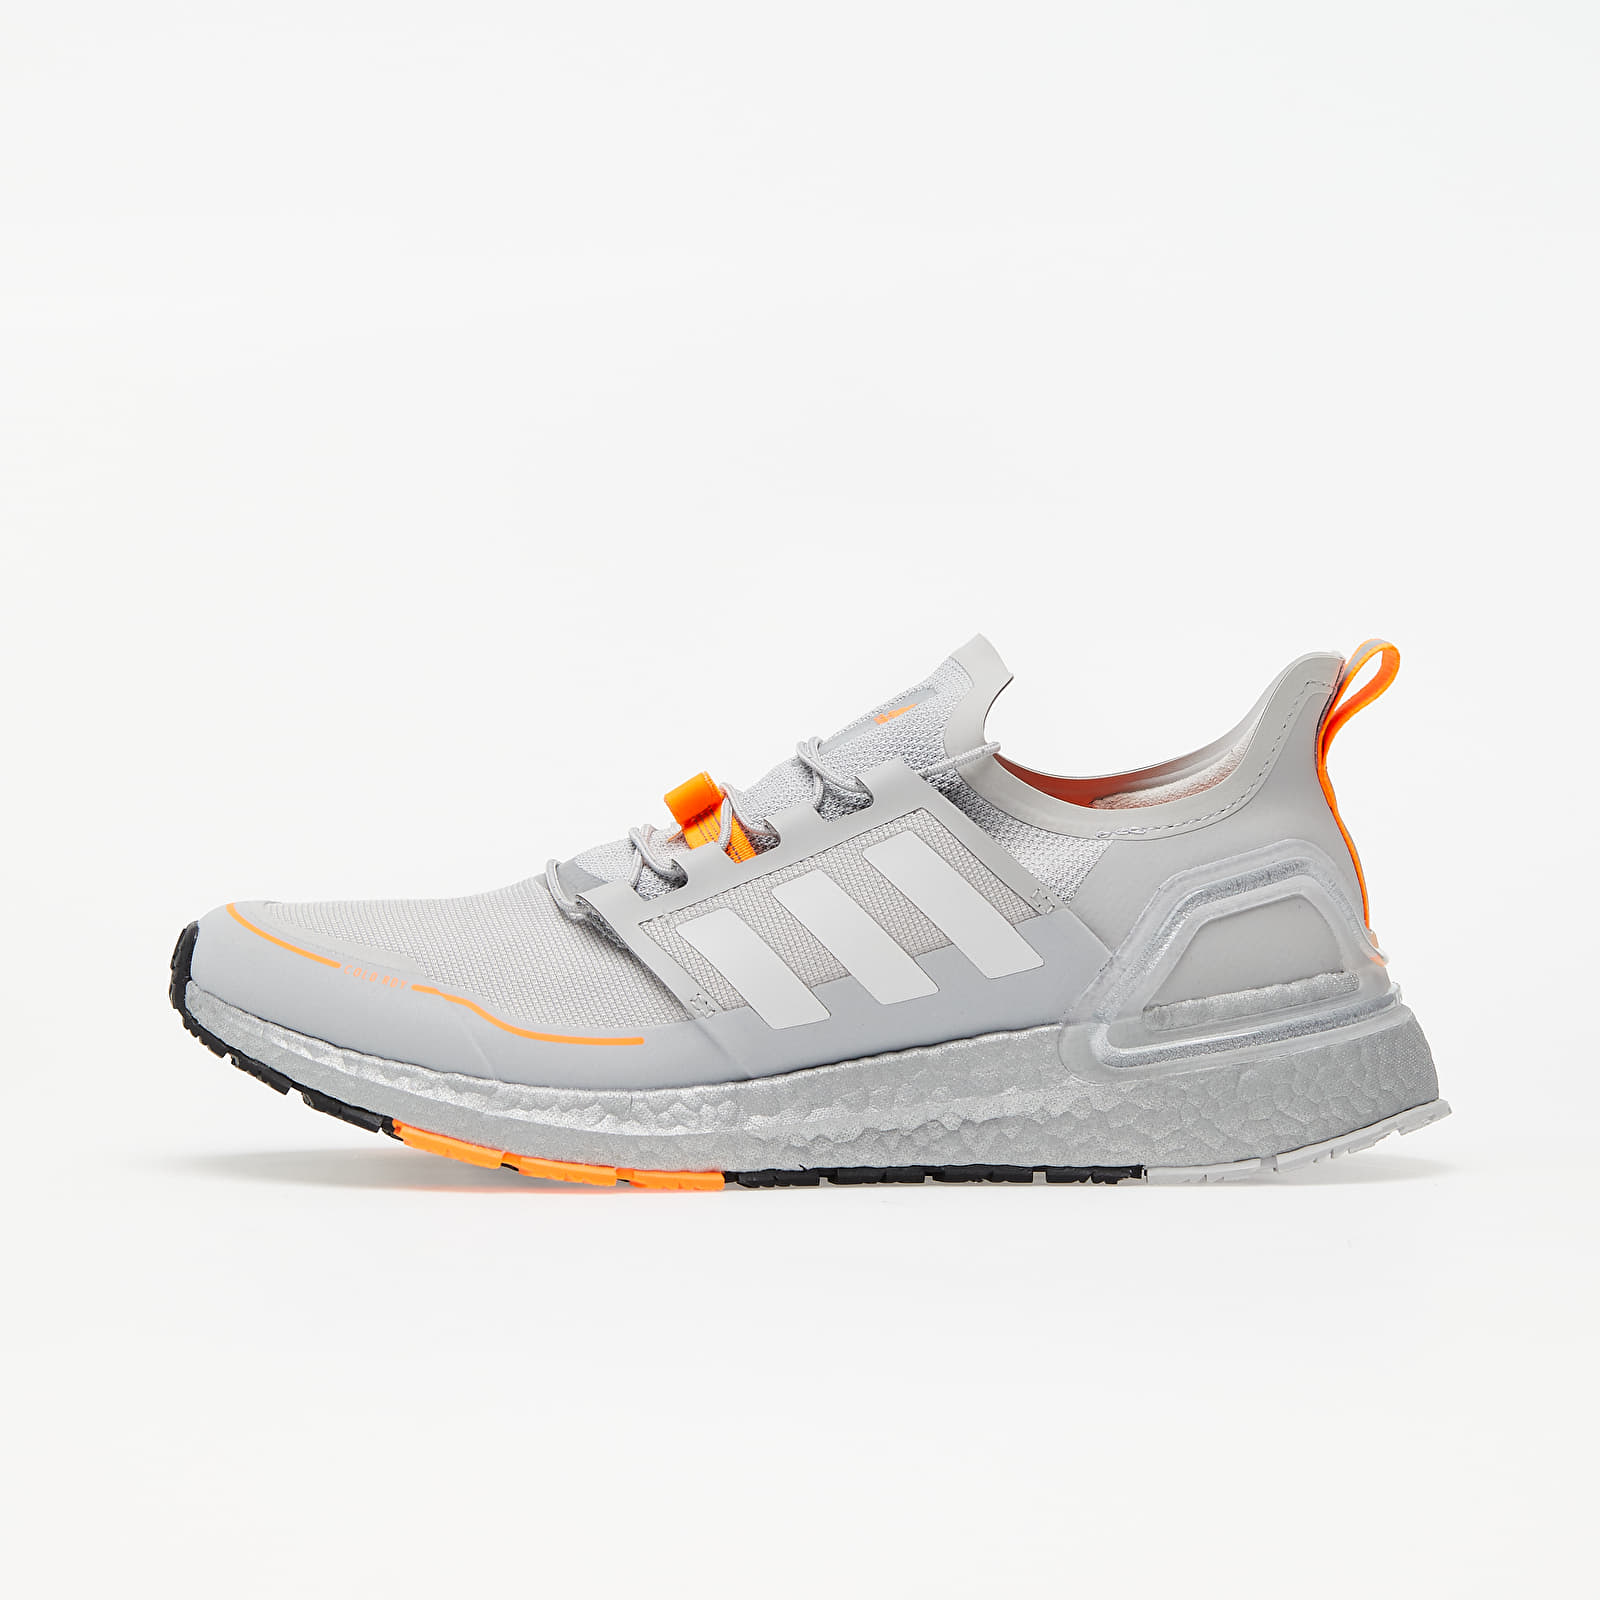 Herenschoenen adidas UltraBOOST COLD.RDY Grey Two/ Ftw White/ Signature Orange